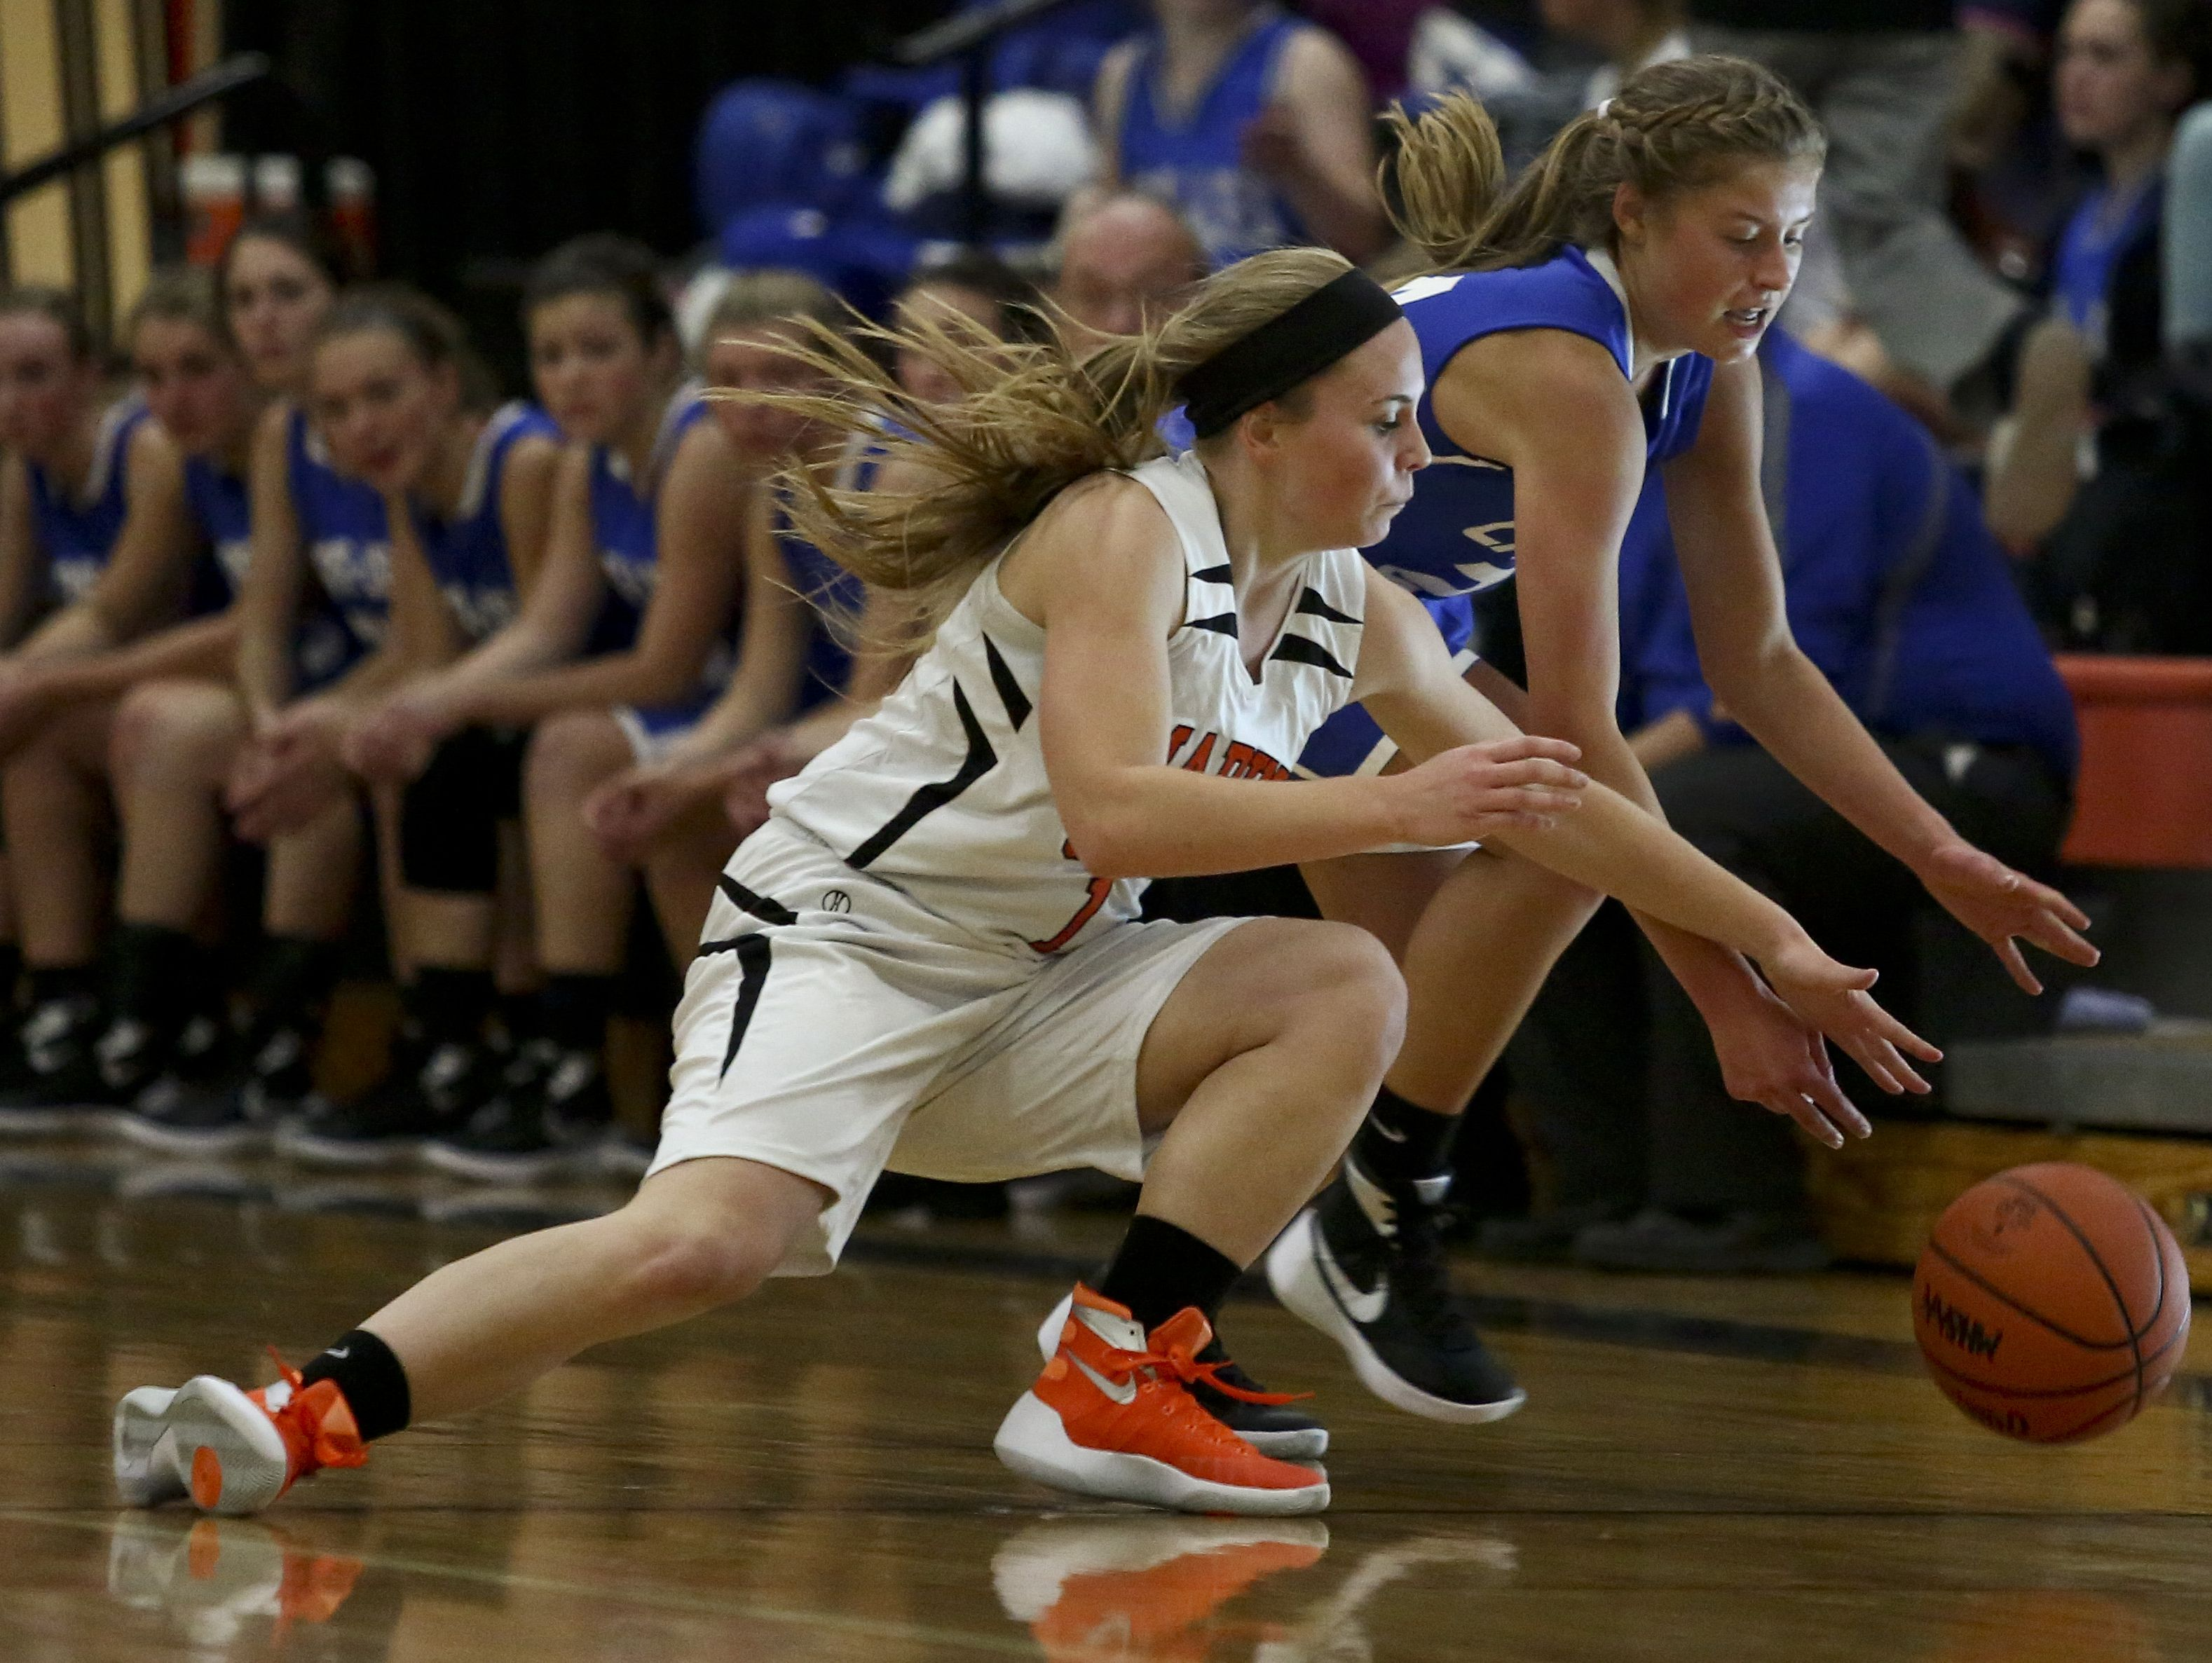 Marine City's Antonia Potvin and Cros-Lex's Calli Townsend fight for possession of a loose ball during a basketball game Tuesday, December 1, 2015 at Marine City High School.